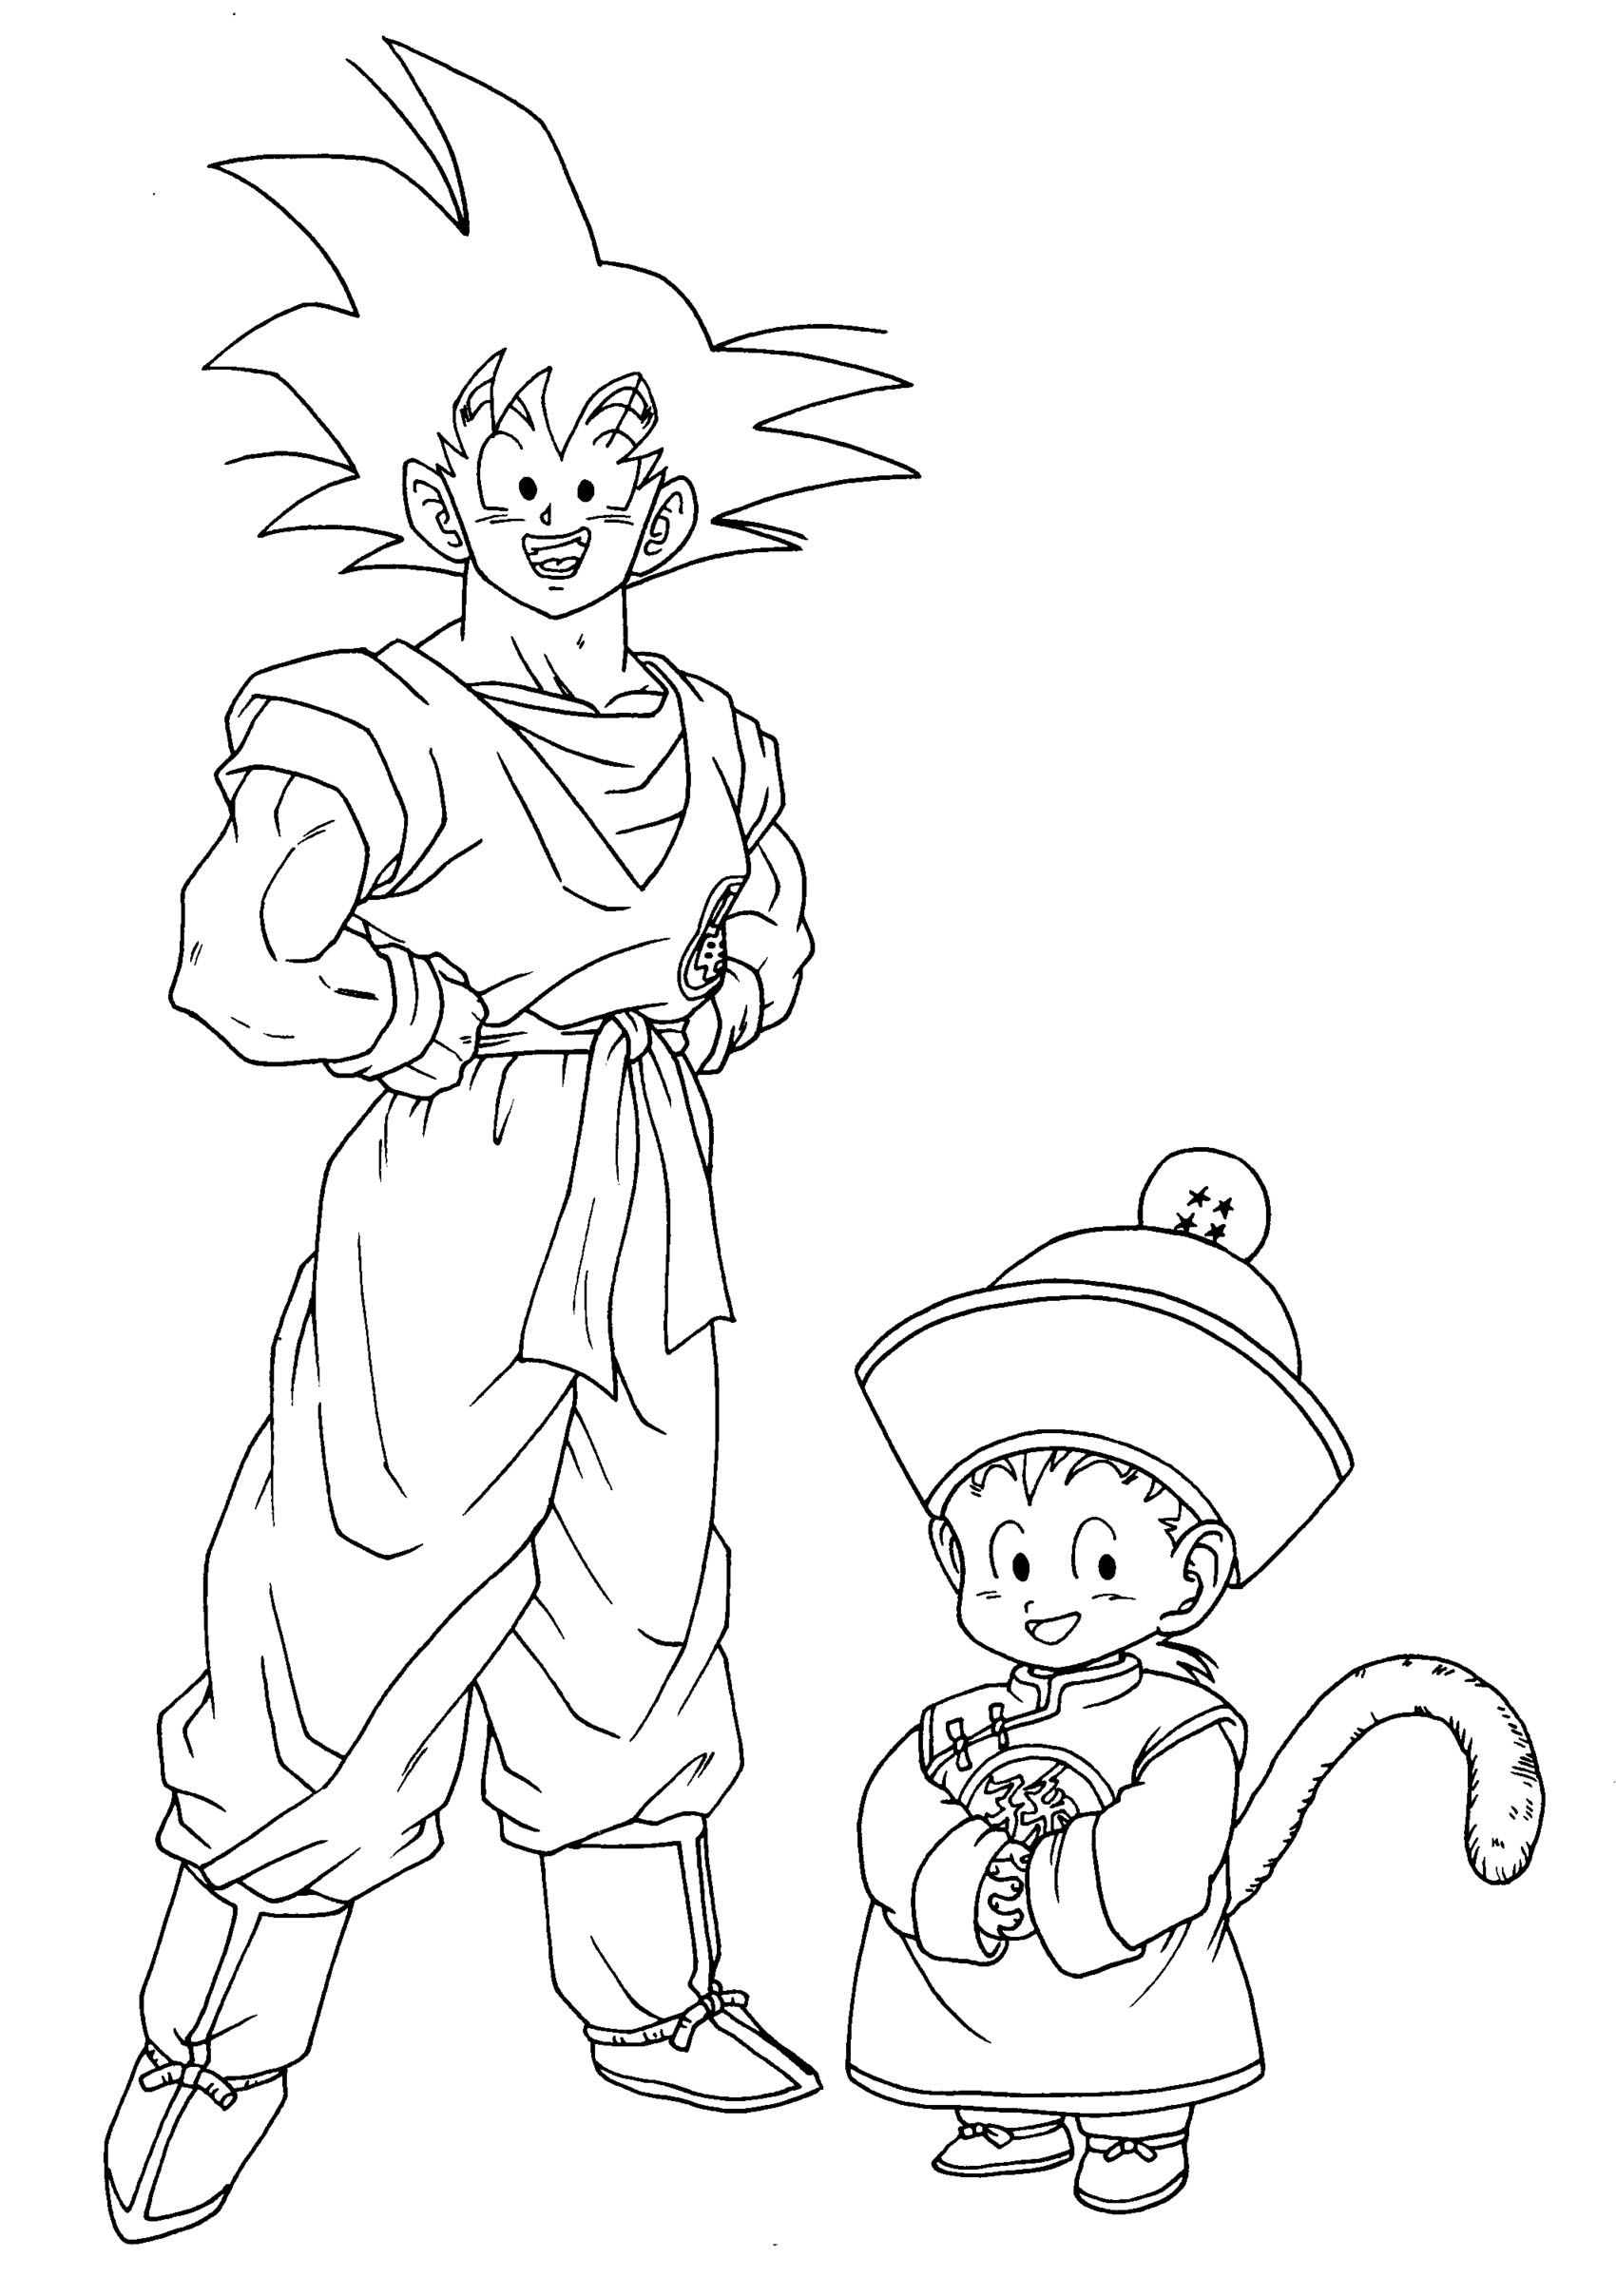 Coloriages dragon ball z 11 coloriage dragon ball z coloriages pour enfants - Dessin dragon ball z facile ...